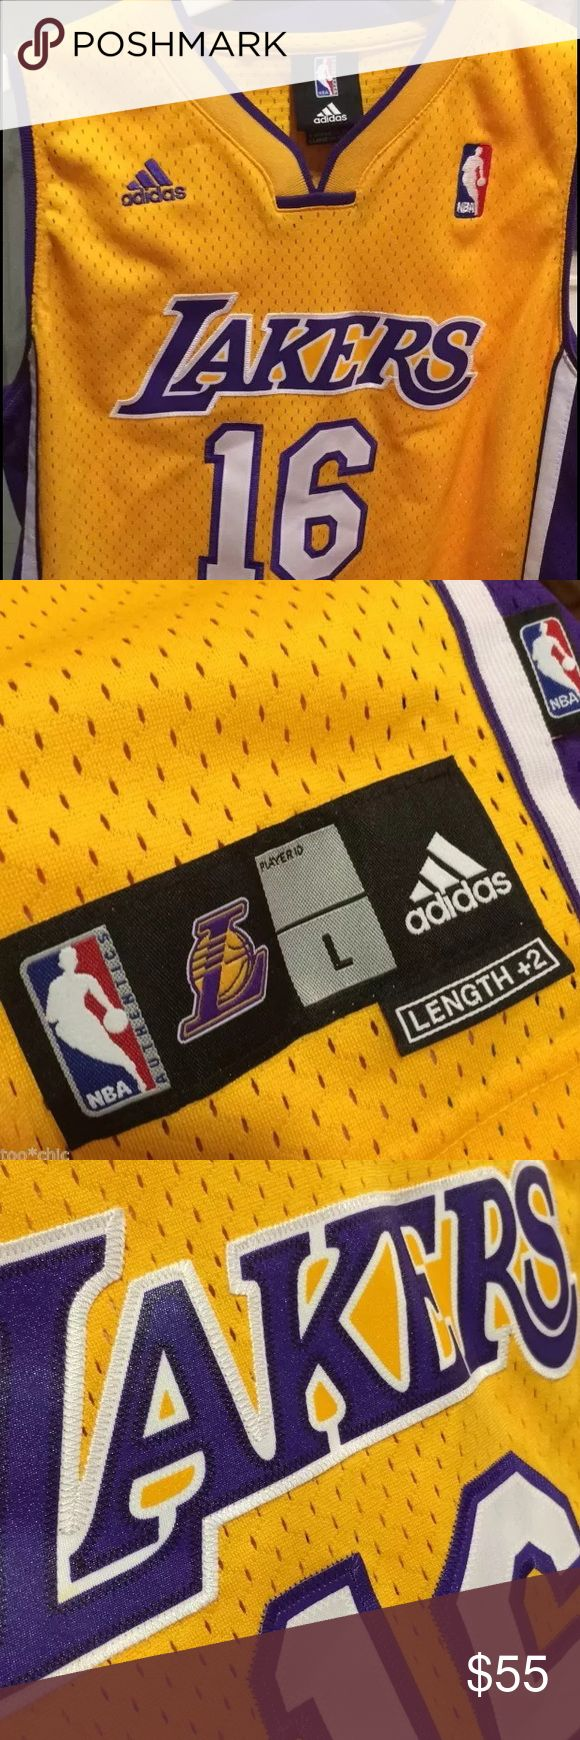 """LA LAKERS ADIDAS JERSEY!Pau Gasol LADIES S YOUTH14 LAKERS LOS ANGELES NBA JERSEY! 100% Authentic direct from NBA Store!   NEW LA PAU GASOL ADIDAS GOLD SWINGMAN OFFICIAL NBA BASKETBALL JERSEY!  NBA Jersey- 100% Authentic! Nice Adidas details like re engineered Climacool fabric for enhanced comfort. Bk hem 2"""" longer, sewn patches- OFFICIALLY LICENSED. Climacool technology conducts sweat & heat away. Paid $75. New.   Size: Youth Large.Fit ladies (s-m) no women's jerseys like this. Men siz…"""